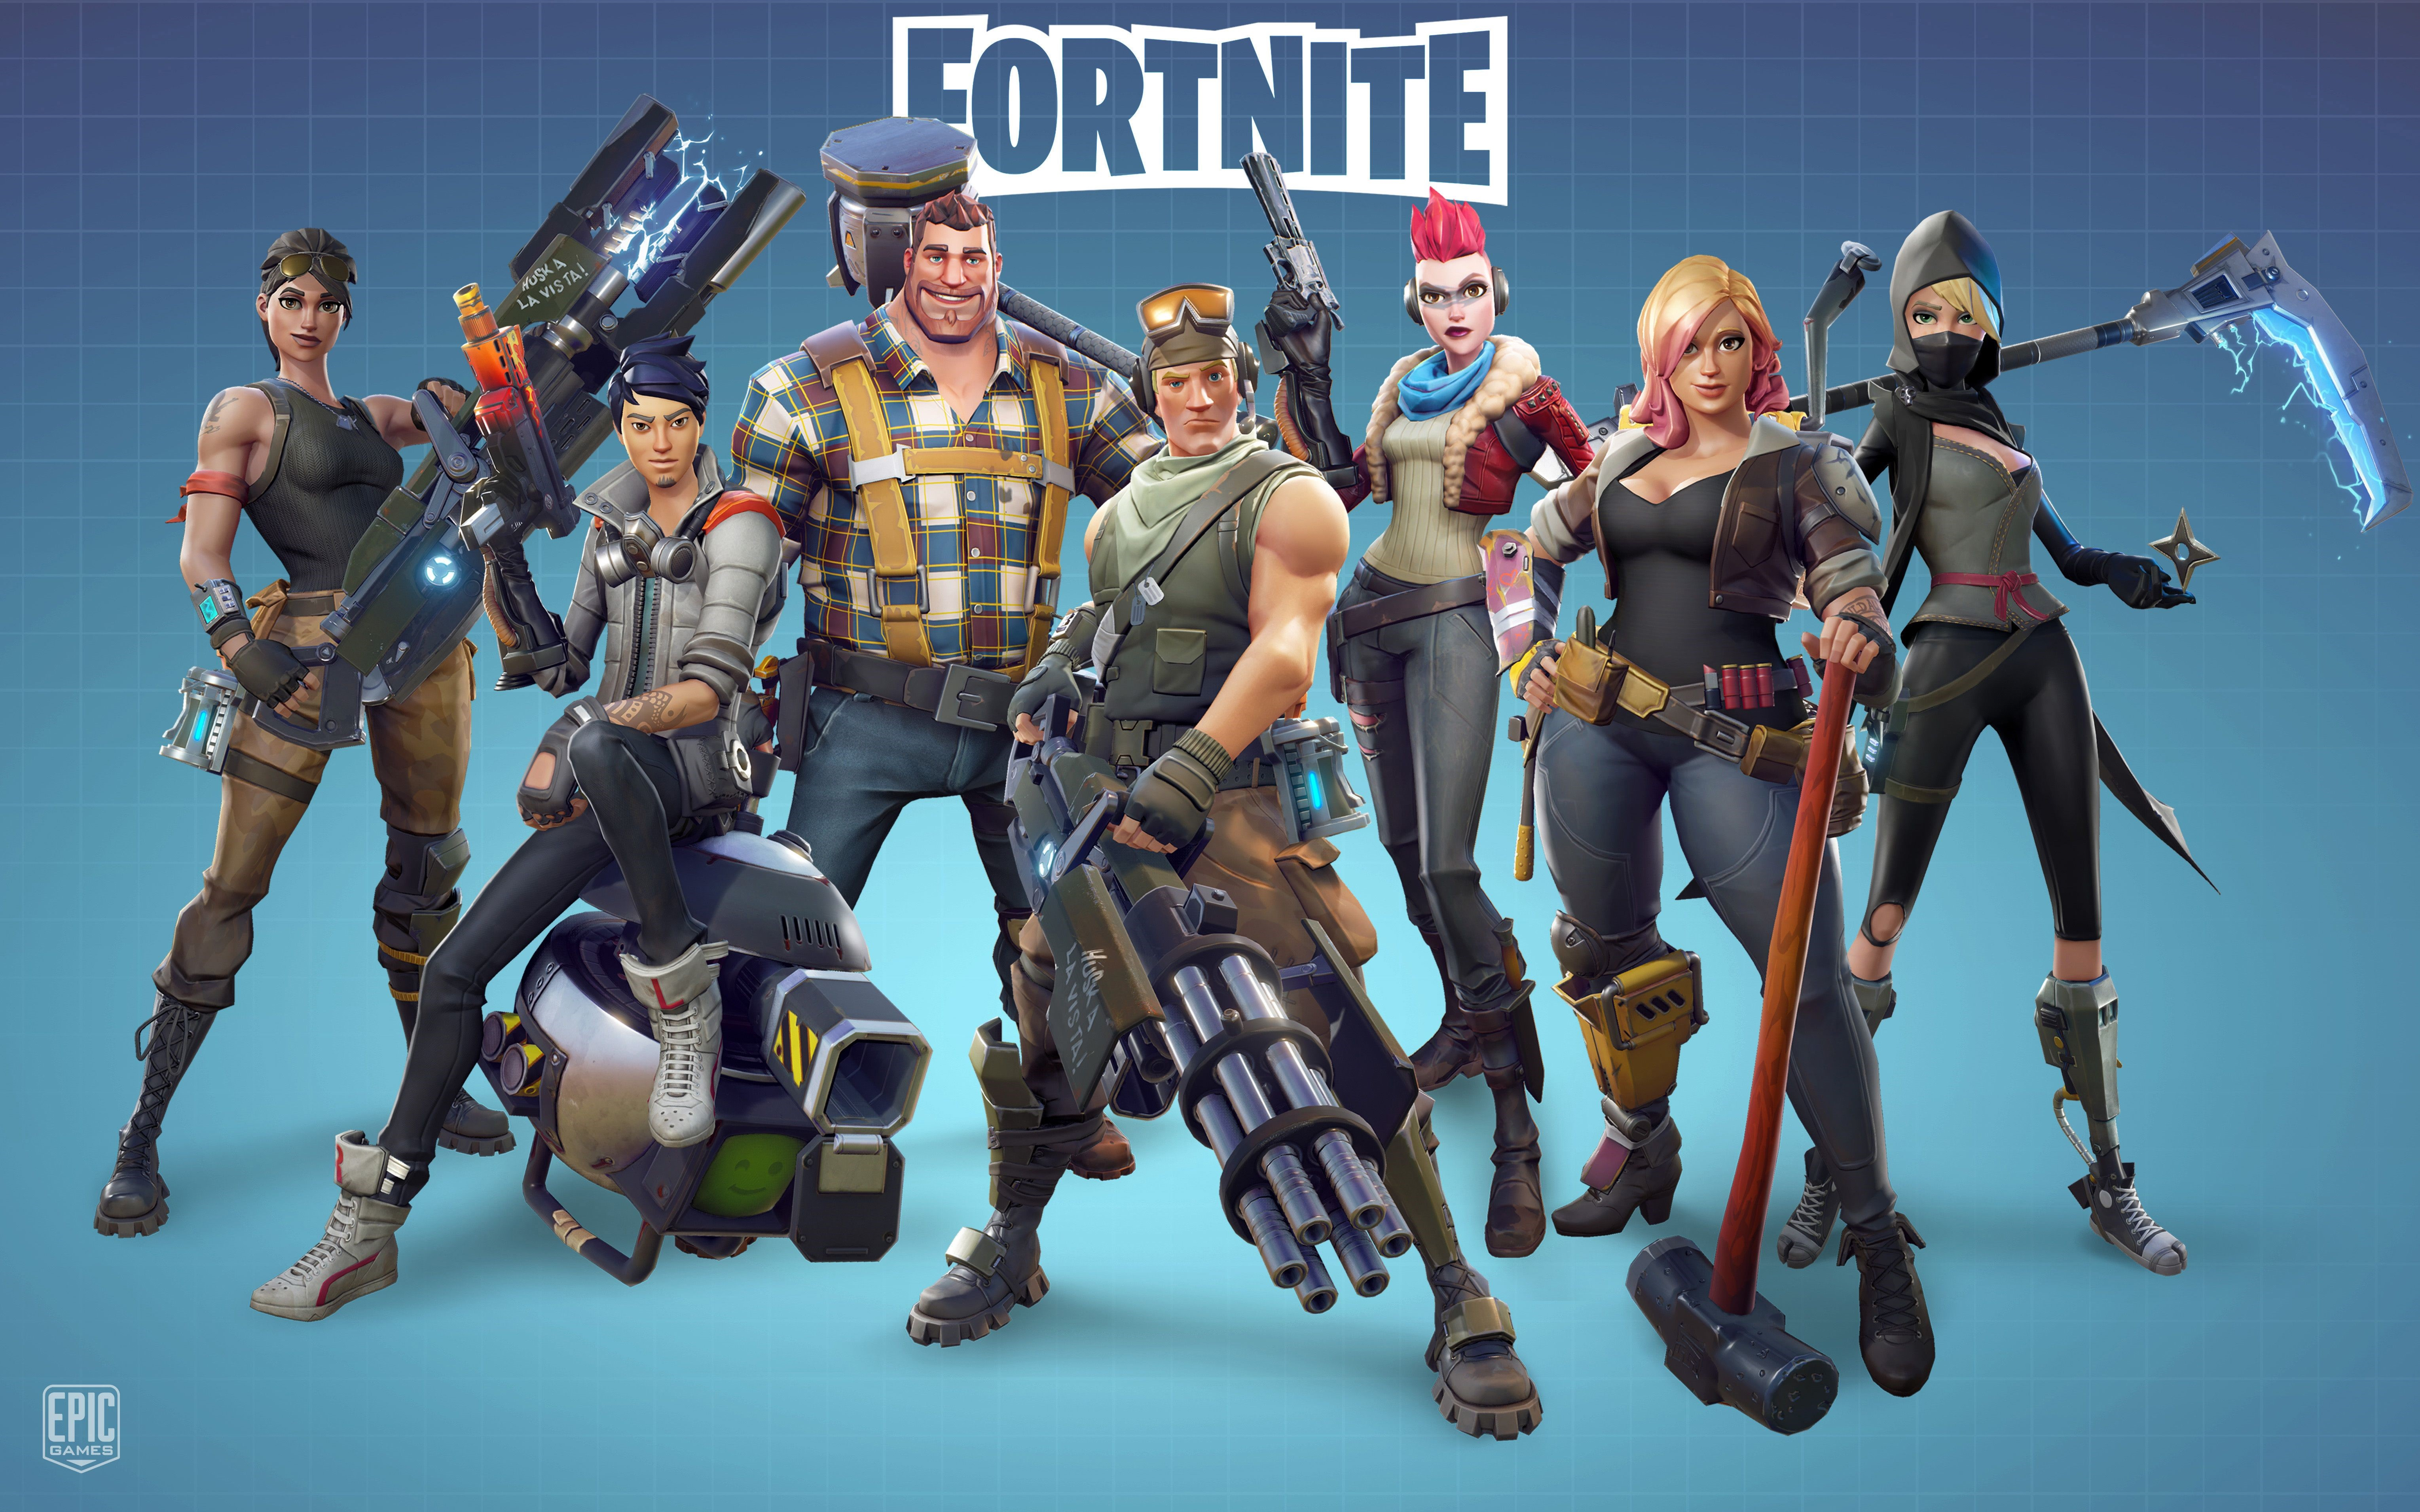 Fortnite Soldier HD Wallpapers